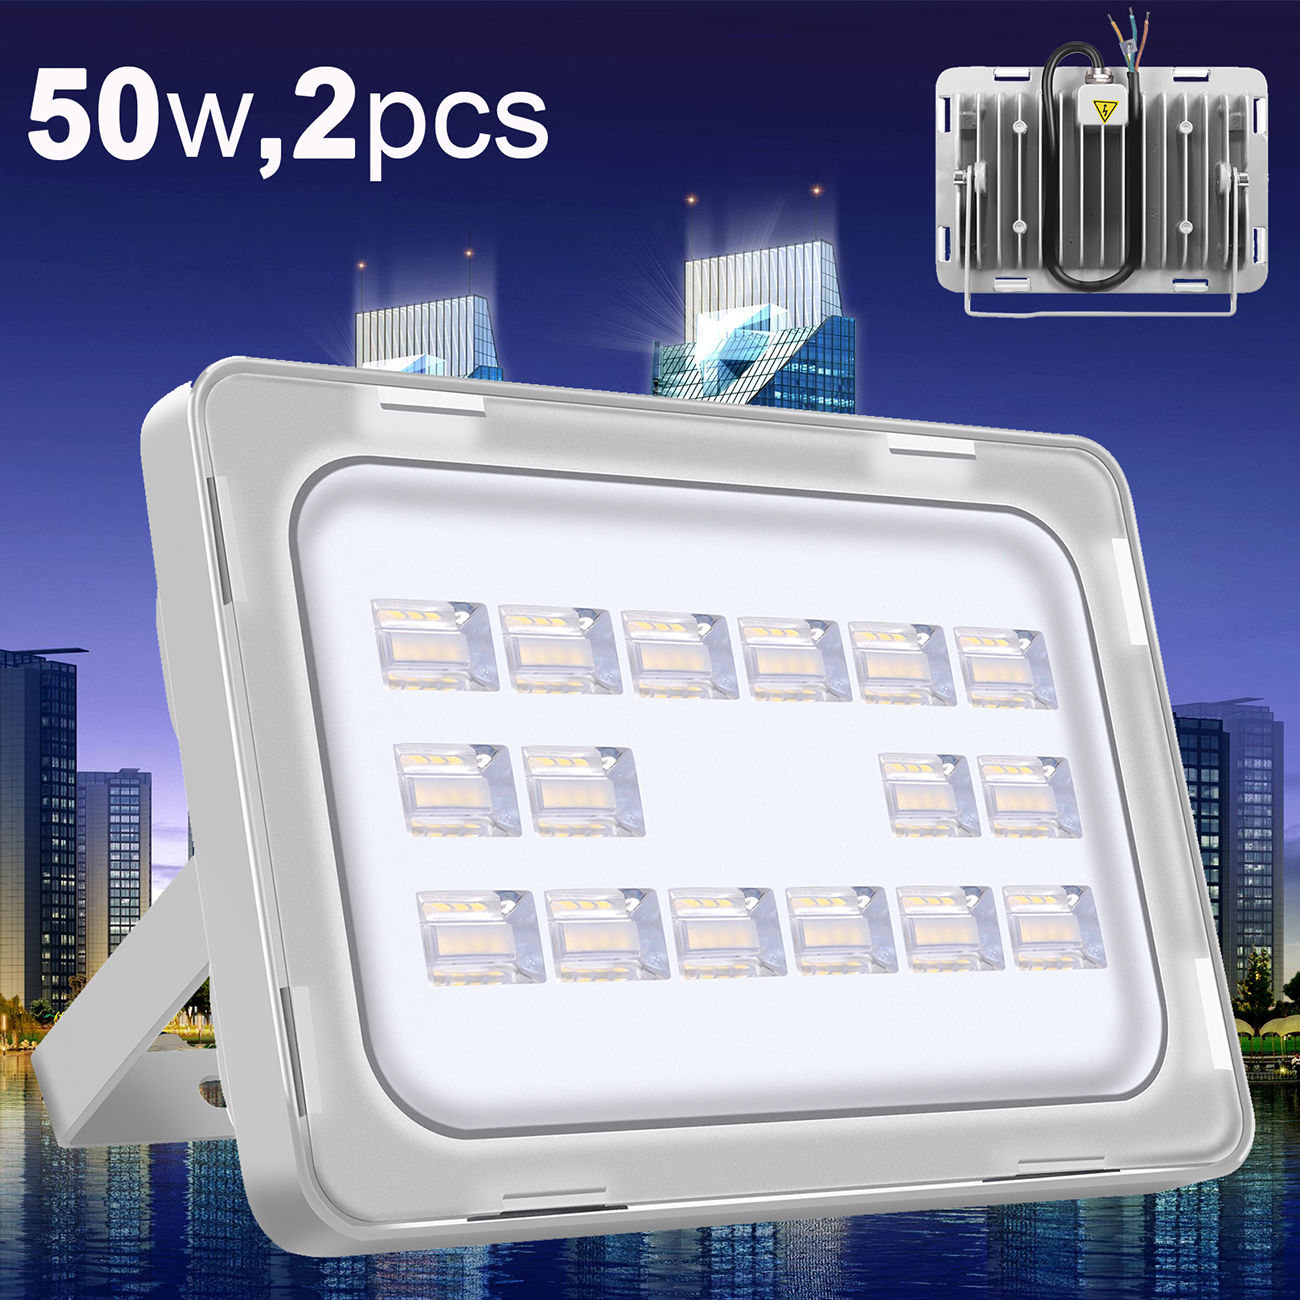 2X Viugreum 50W LED Floodlight Outdoor Yard Wall Lamp Cool Day White Waterproof